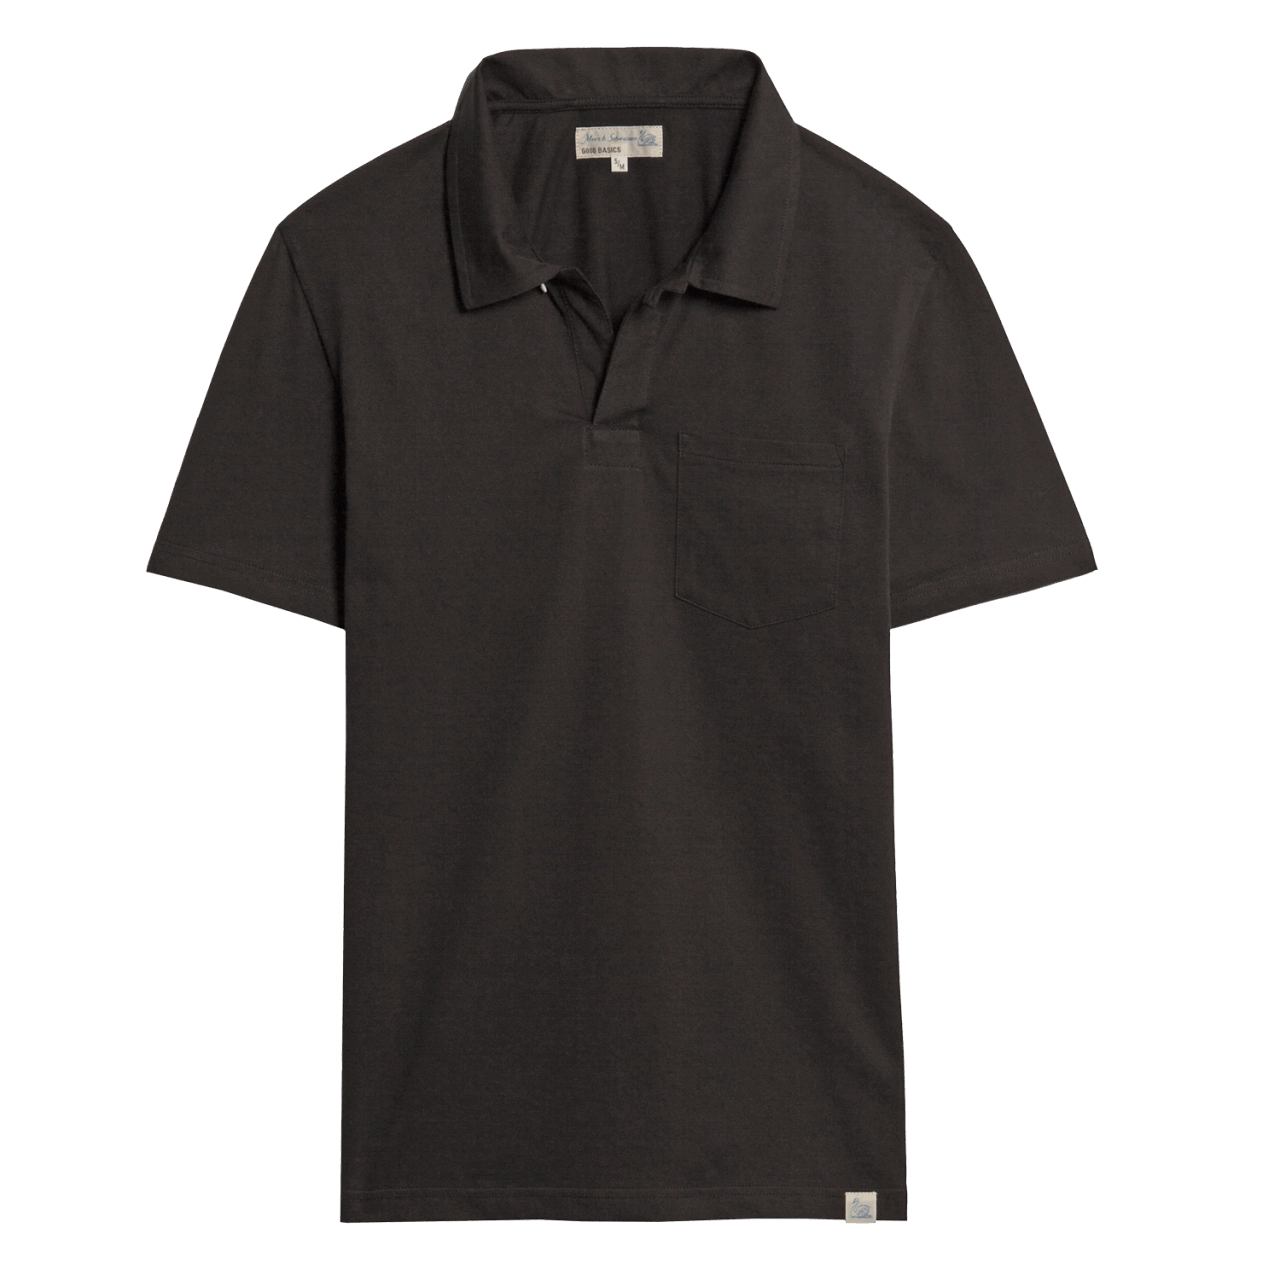 Merz b. Schwanen Pocket Polo Shirt - Deep Black